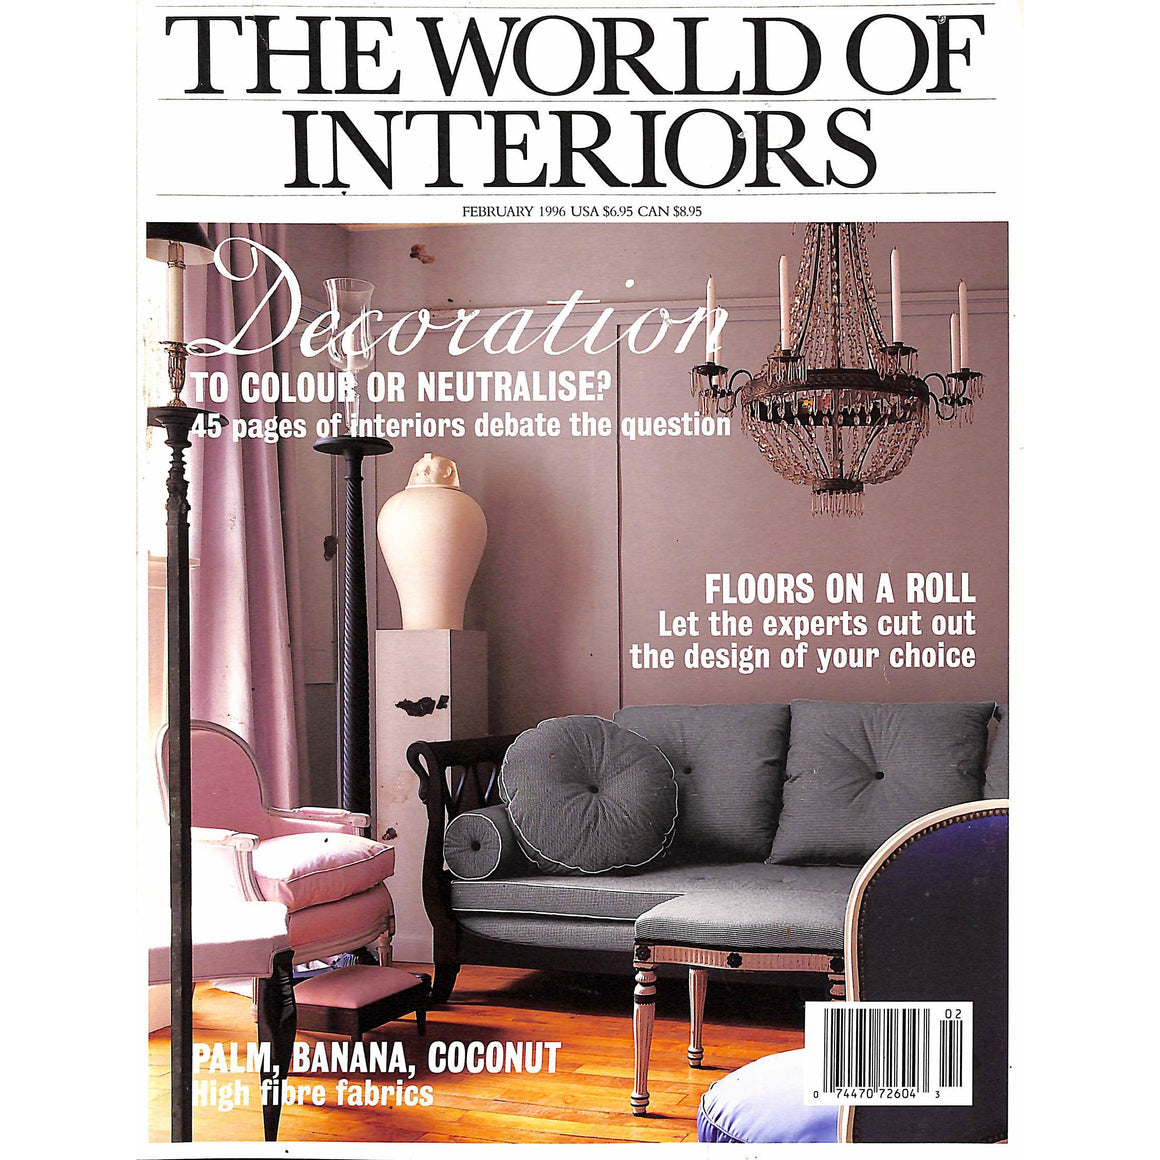 The World of Interiors March 1993